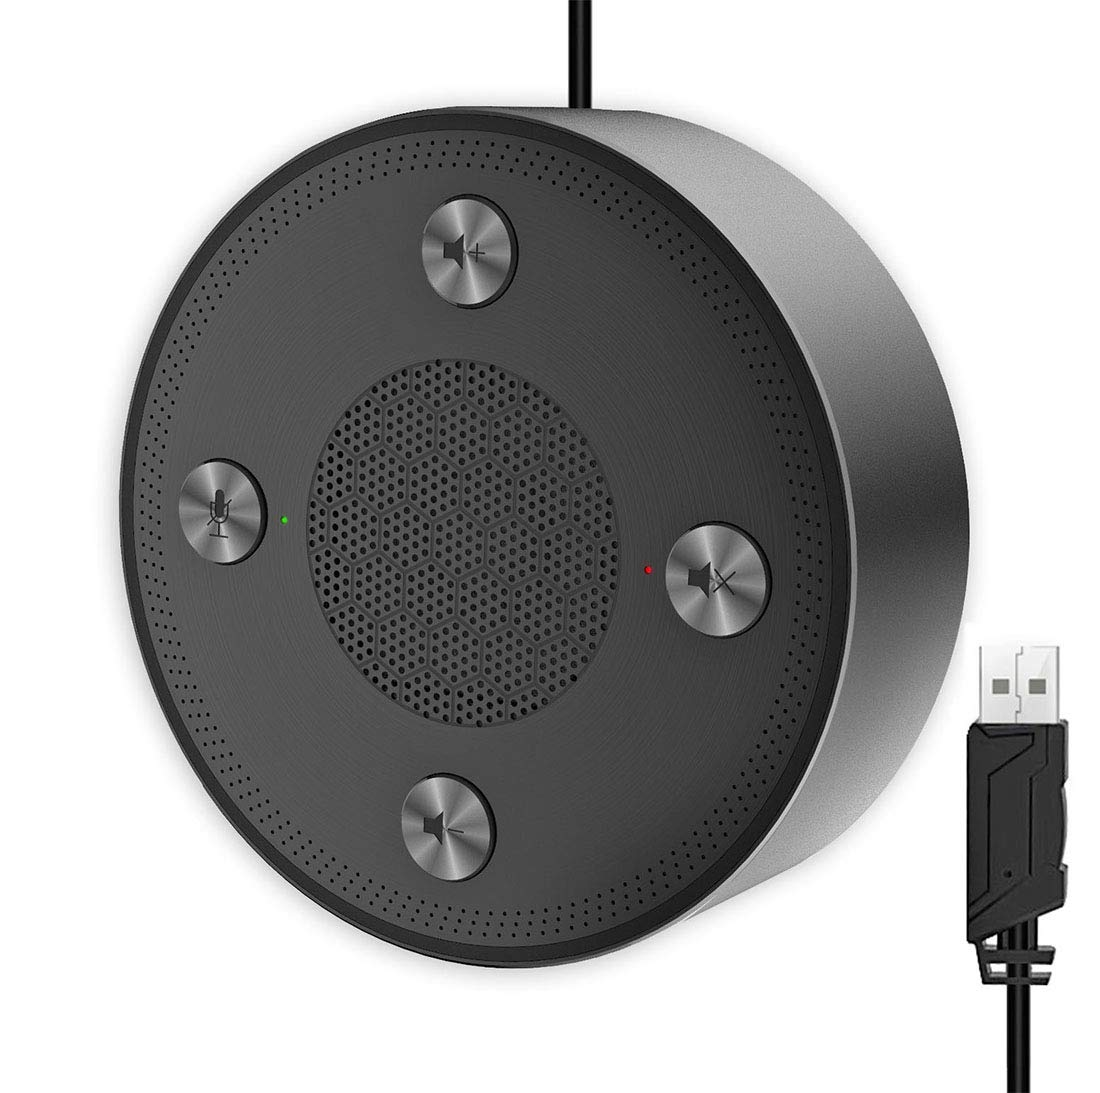 USB Microphone Speakers, CMTECK ZM330 Speakerphone - Omnidirectional Desktop Computer Conference Mic with 360º Voice Pickup, Mute Function for Streaming, VoIP Calls,Skype,Interviews,Chatting, compatib